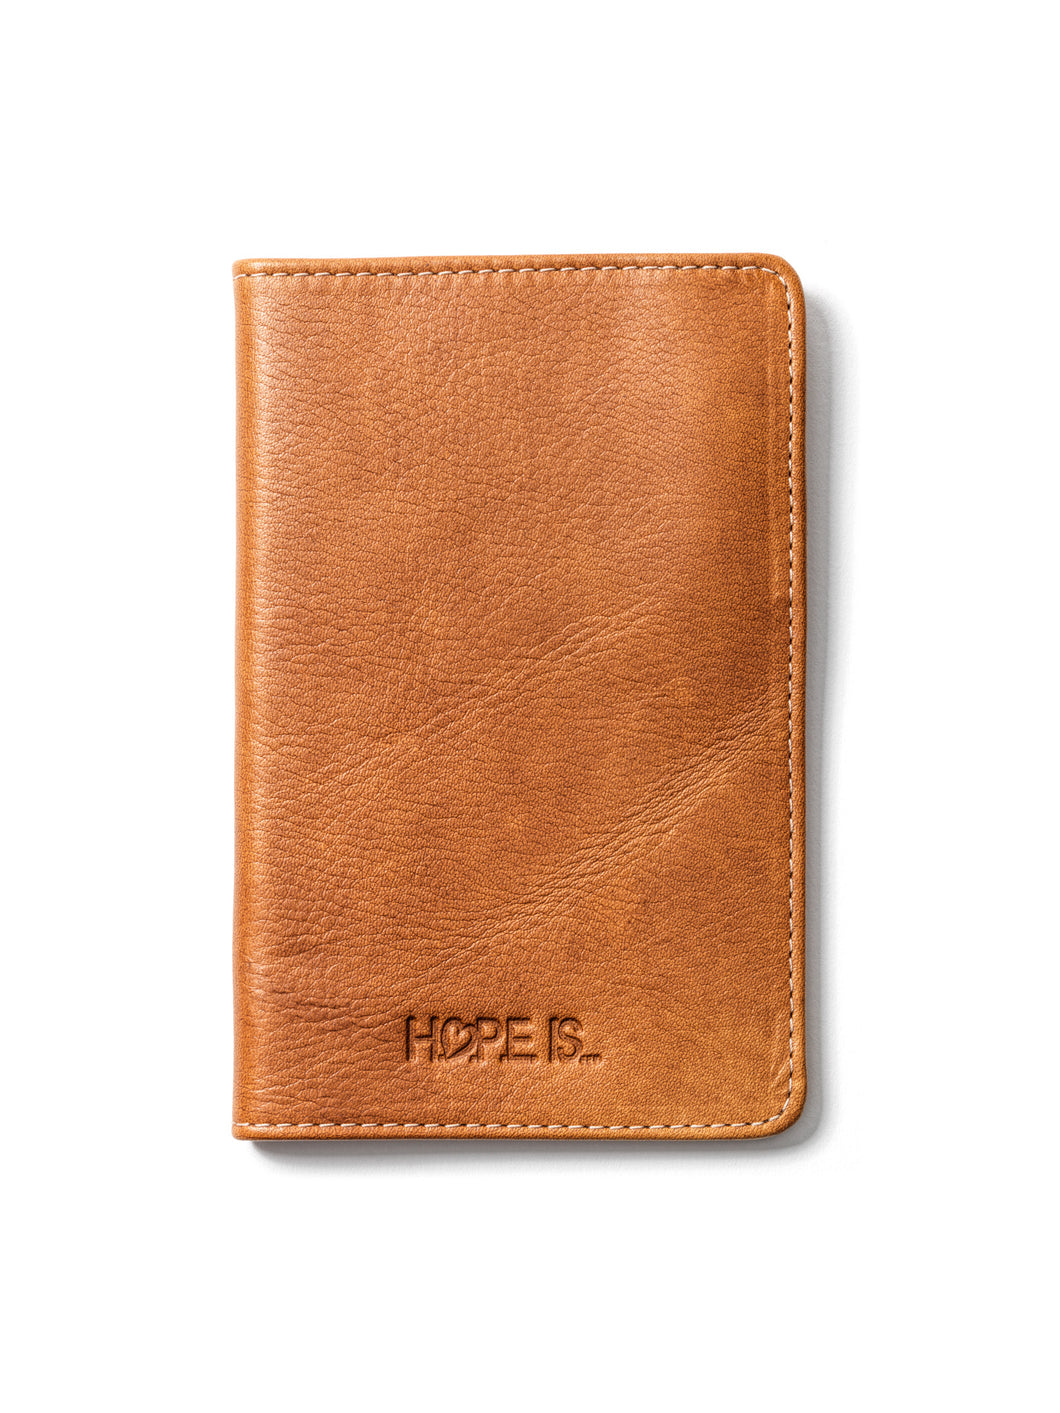 Igual (Equal) Brown Leather Passport Holder